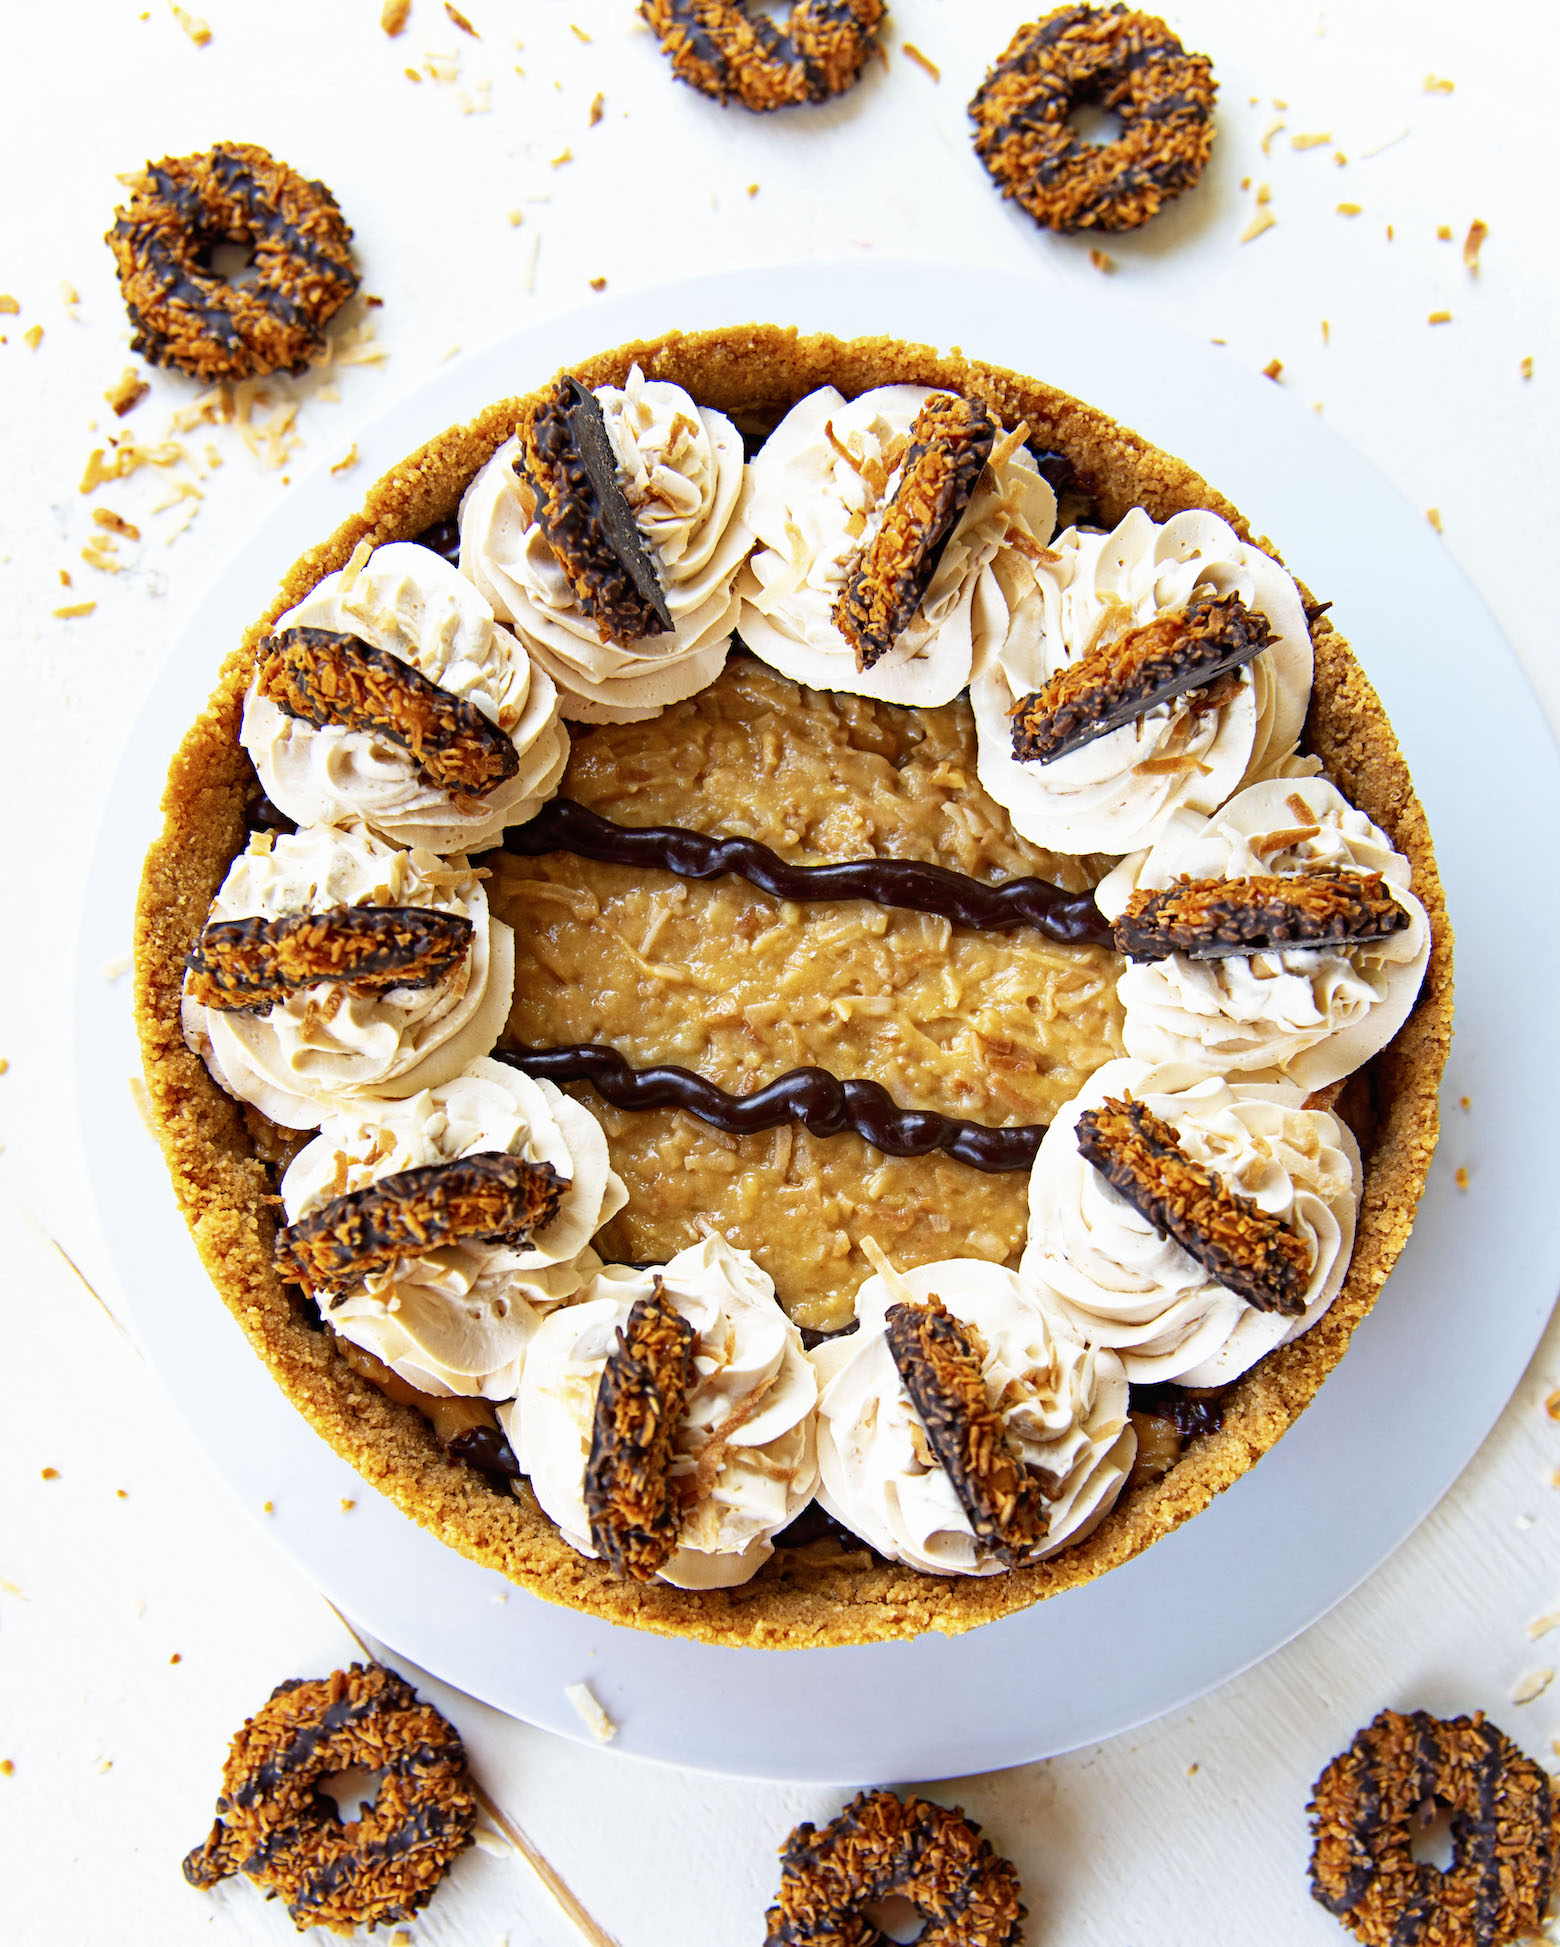 Overhead shot of Samoas Chocolate Coconut Cream Pie with scattered Samoas cookies.